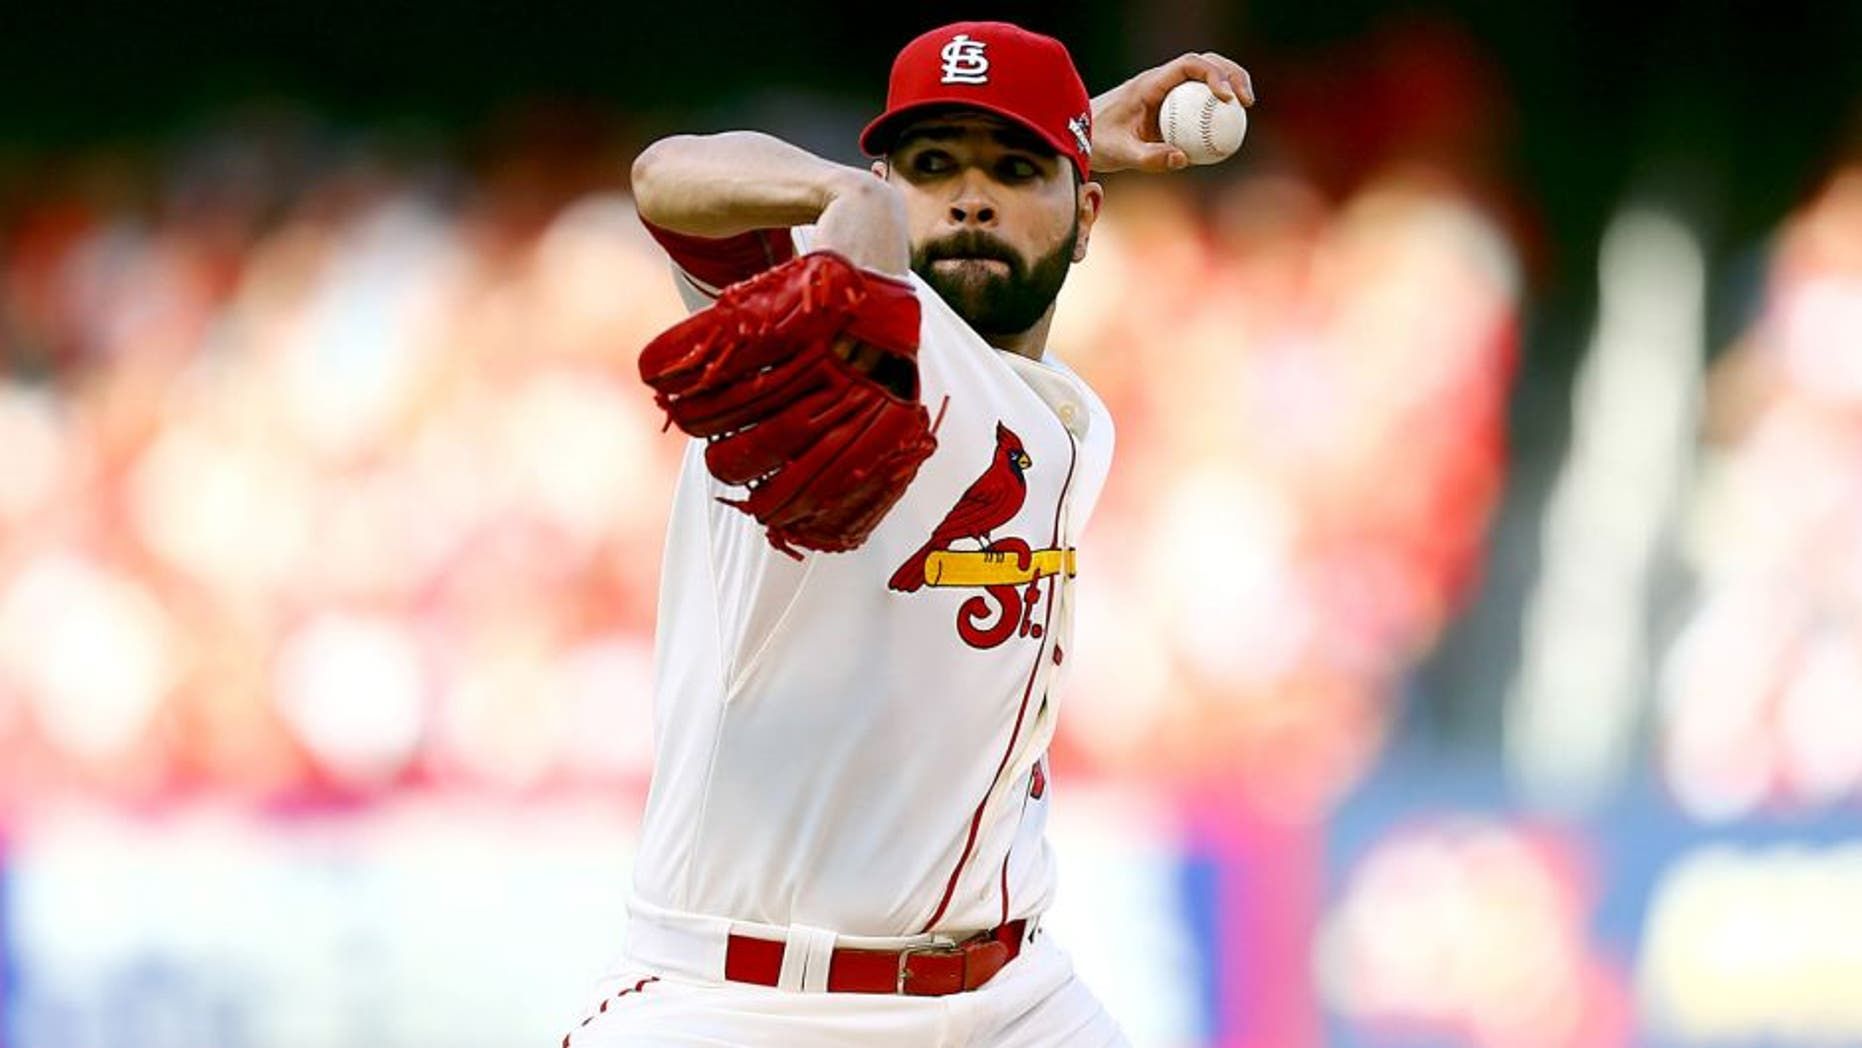 ST LOUIS, MO - OCTOBER 10: Jaime Garcia #54 of the St. Louis Cardinals throws a pitch in the first inning against the Chicago Cubs during game two of the National League Division Series at Busch Stadium on October 10, 2015 in St Louis, Missouri. (Photo by Dilip Vishwanat/Getty Images)